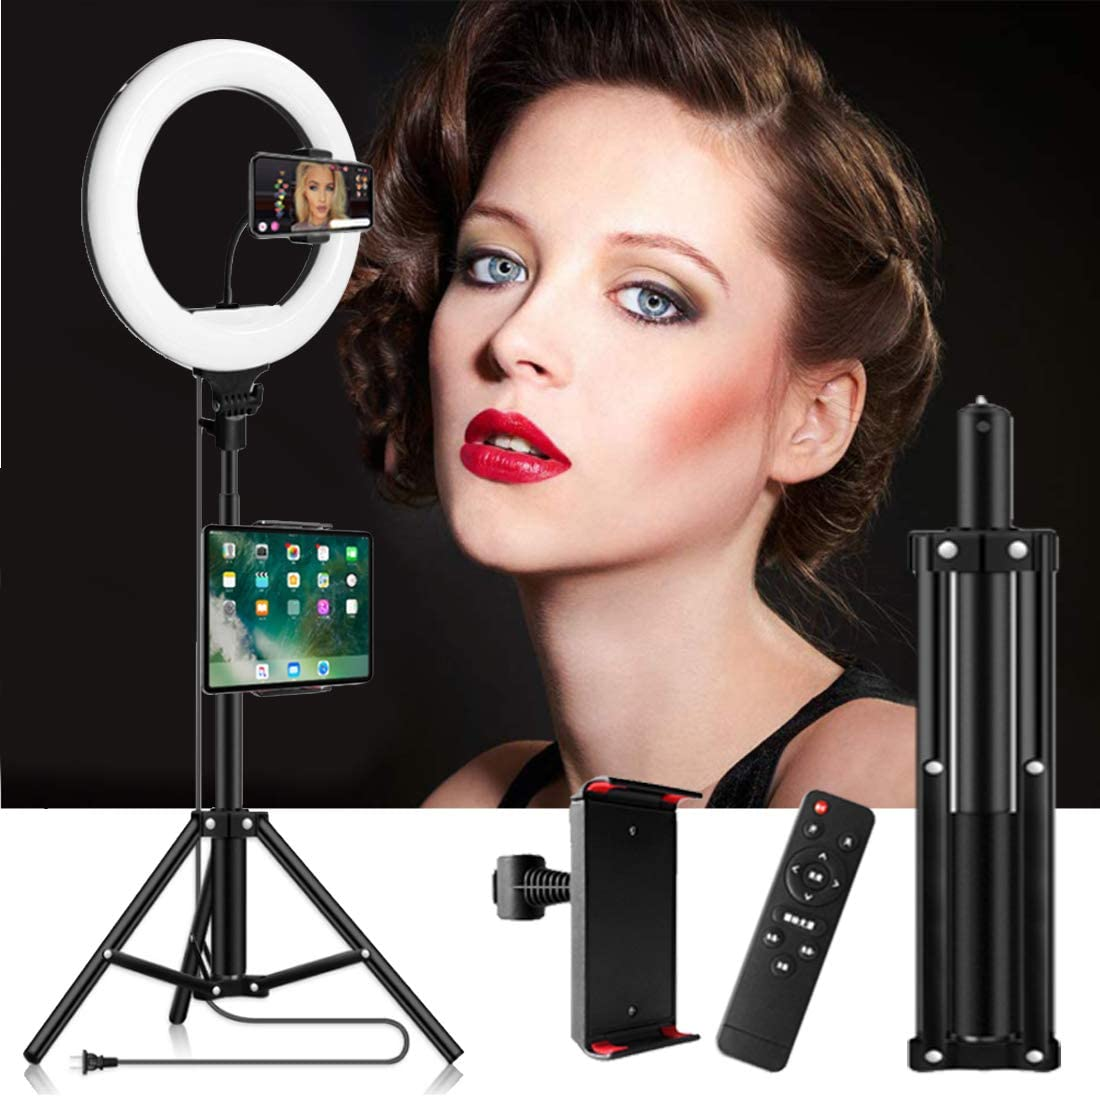 DLMPT LED Ring Light with 1.7m Tripod Stand 3 Color temperatures Bluetooth Controller Ringlight Make Up Light Level for Live Stream Makeup YouTube Video